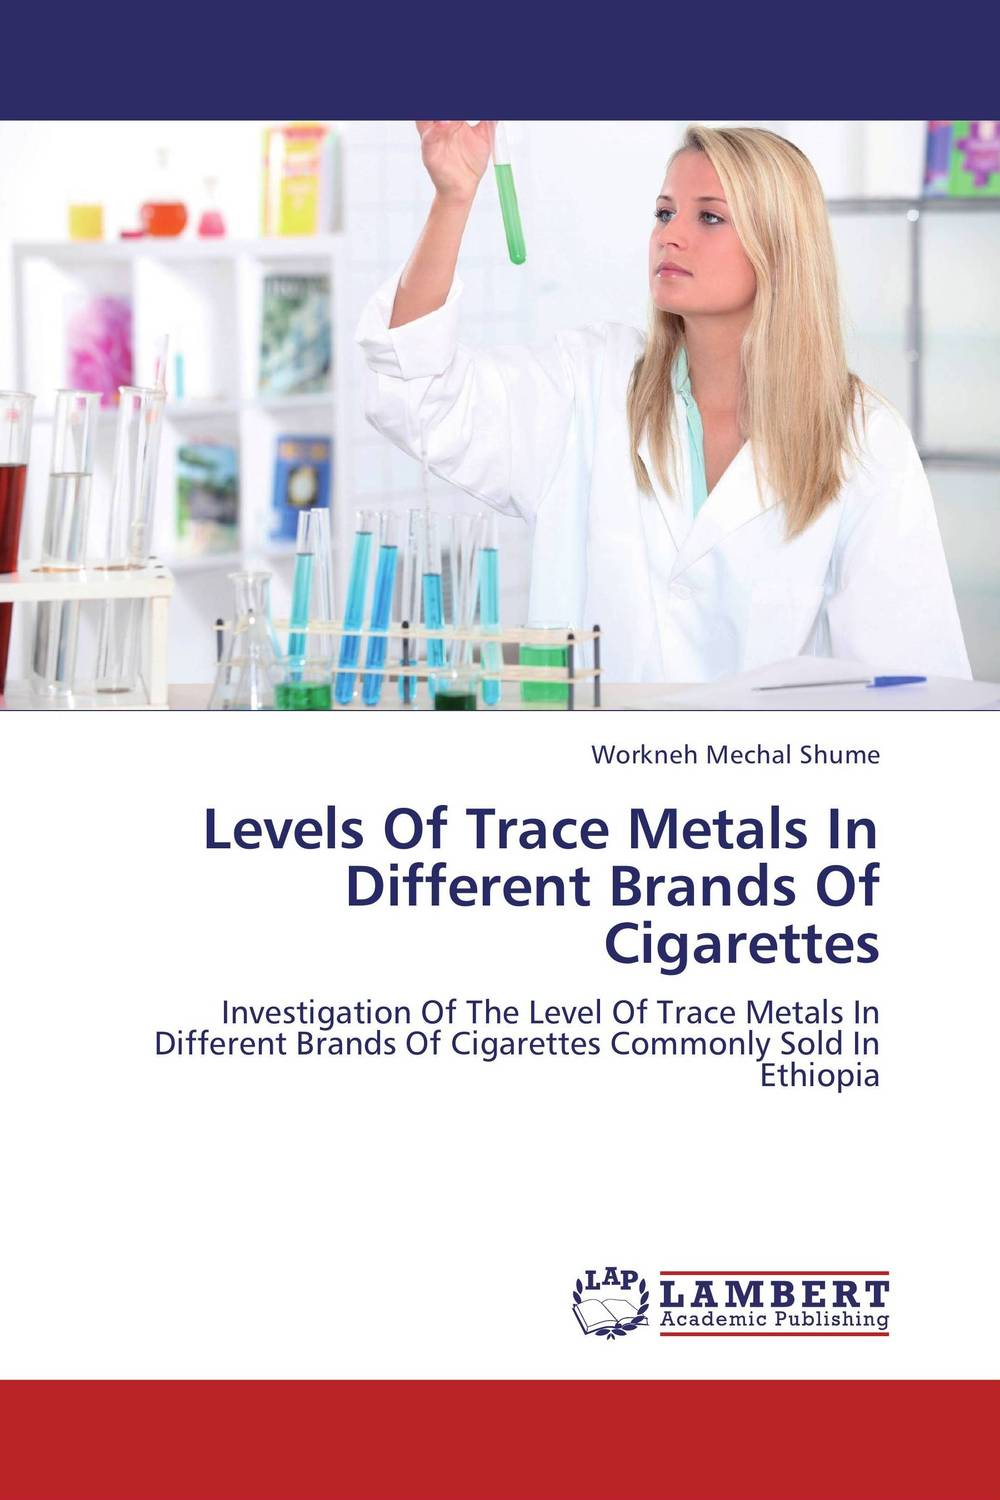 Фото Levels Of Trace Metals In Different Brands Of Cigarettes cervical cancer in amhara region in ethiopia